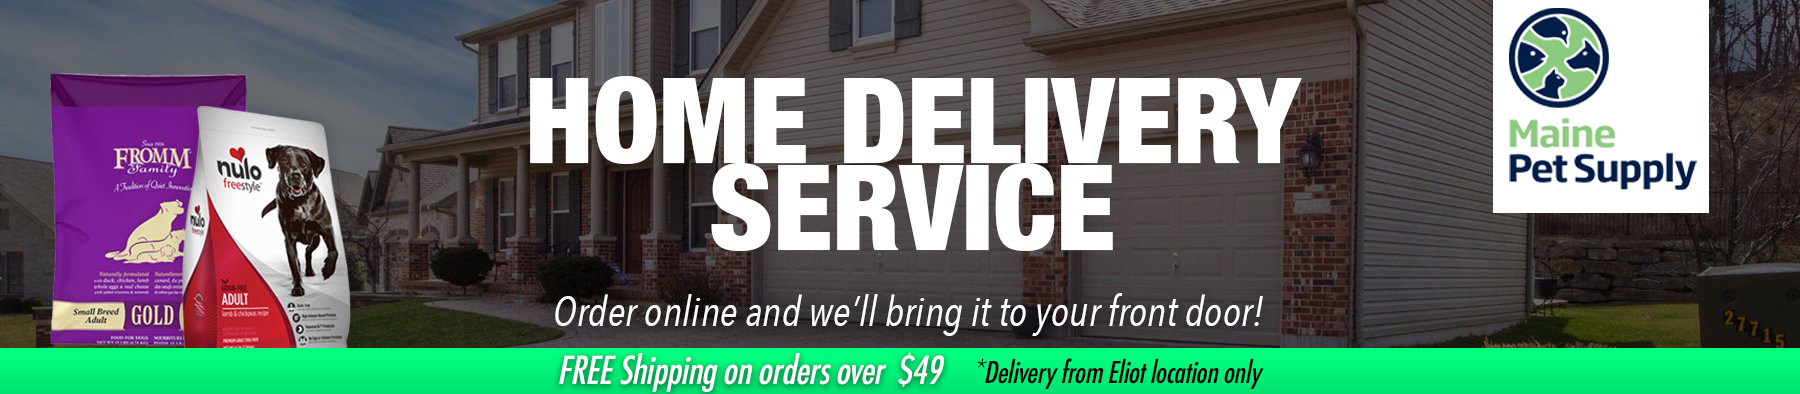 Home delivery banner - free delivery over $49